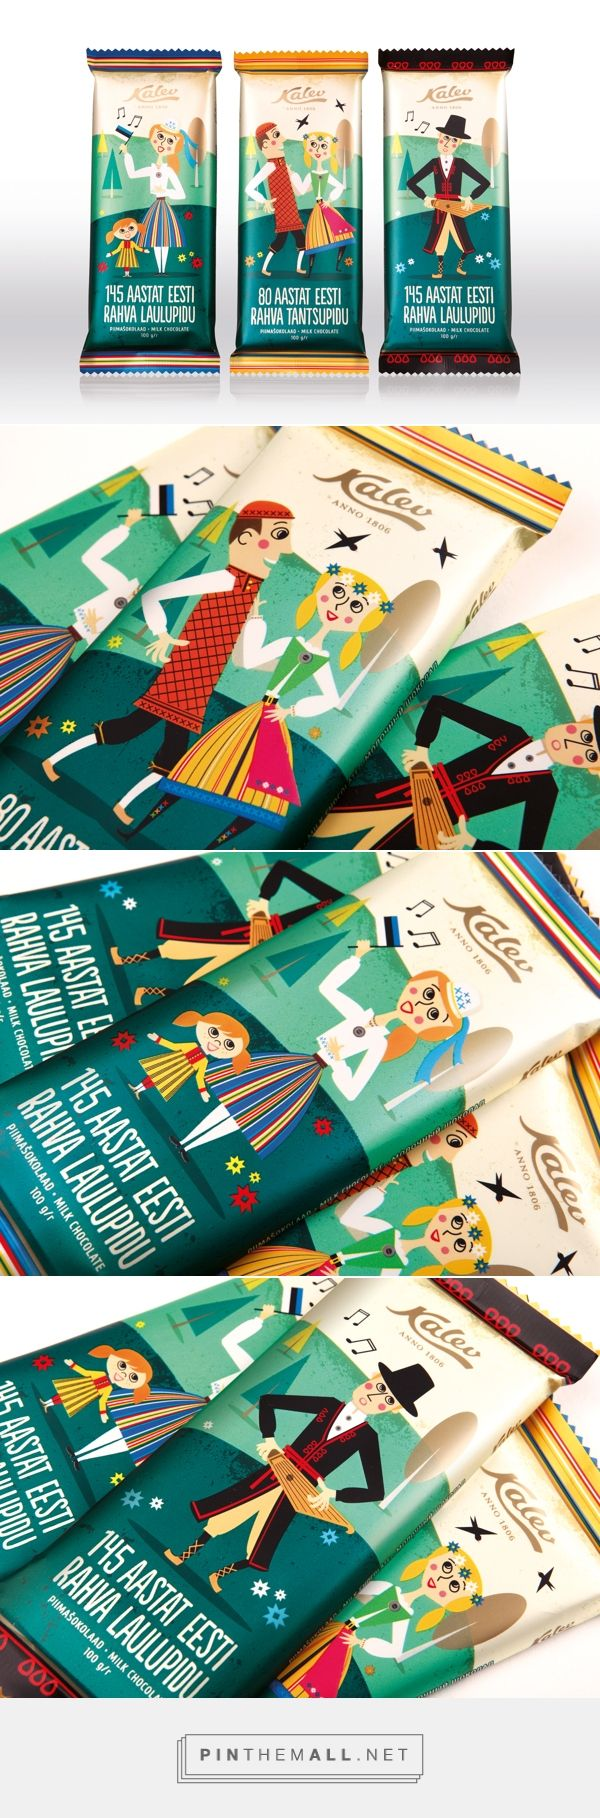 Chocolate bar / Ethno inspired design chocolate bars to support the continuation of the folk traditions in Estonia